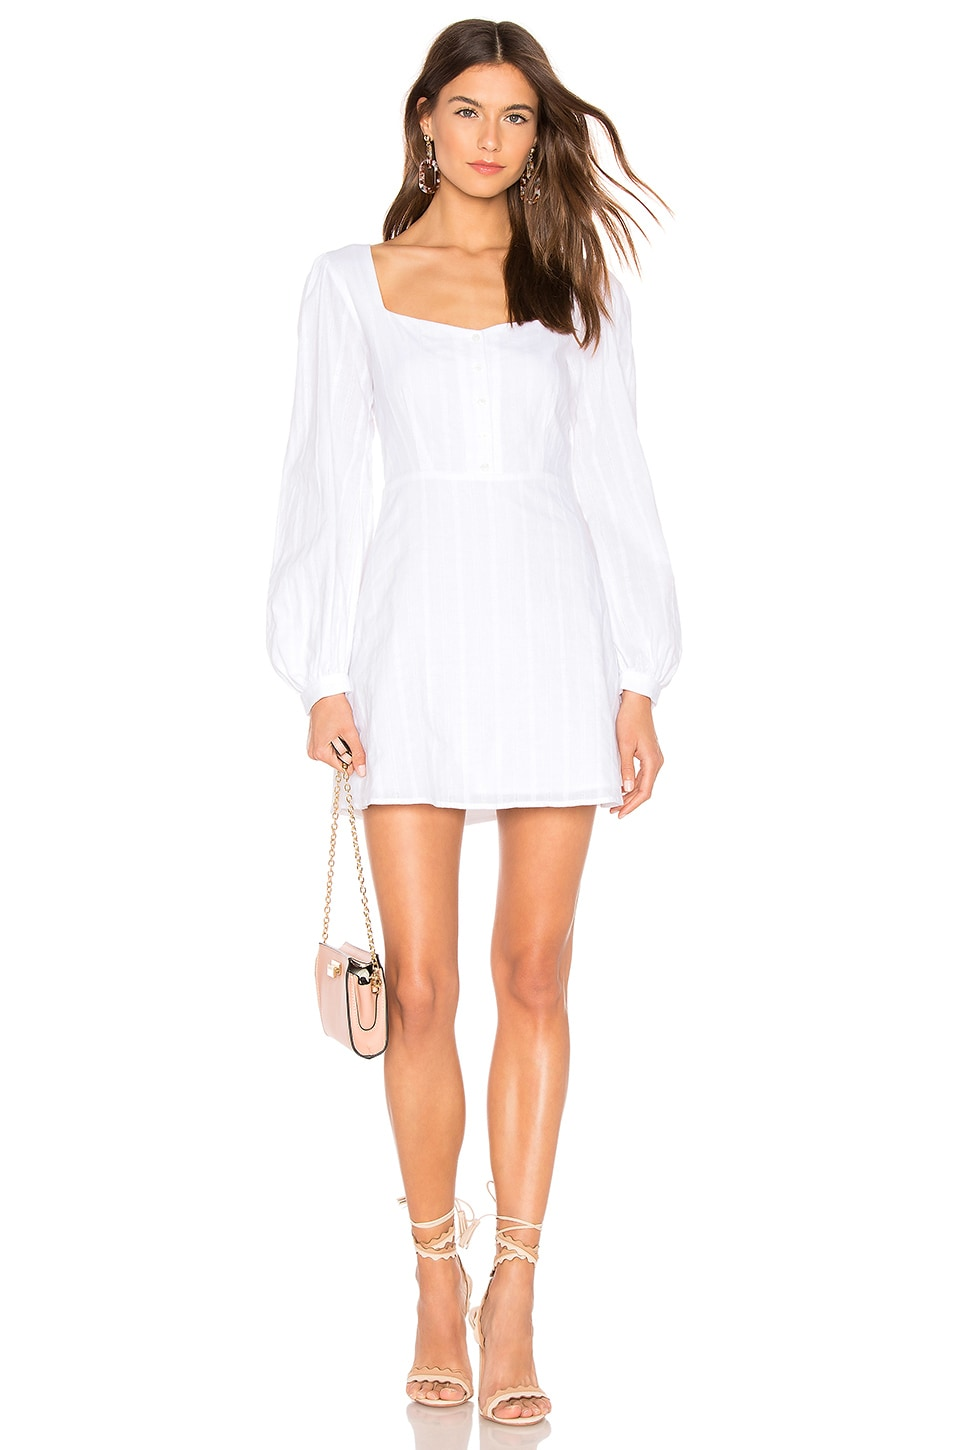 Capulet Dolly Button Down Dress in White Petite Eyelet